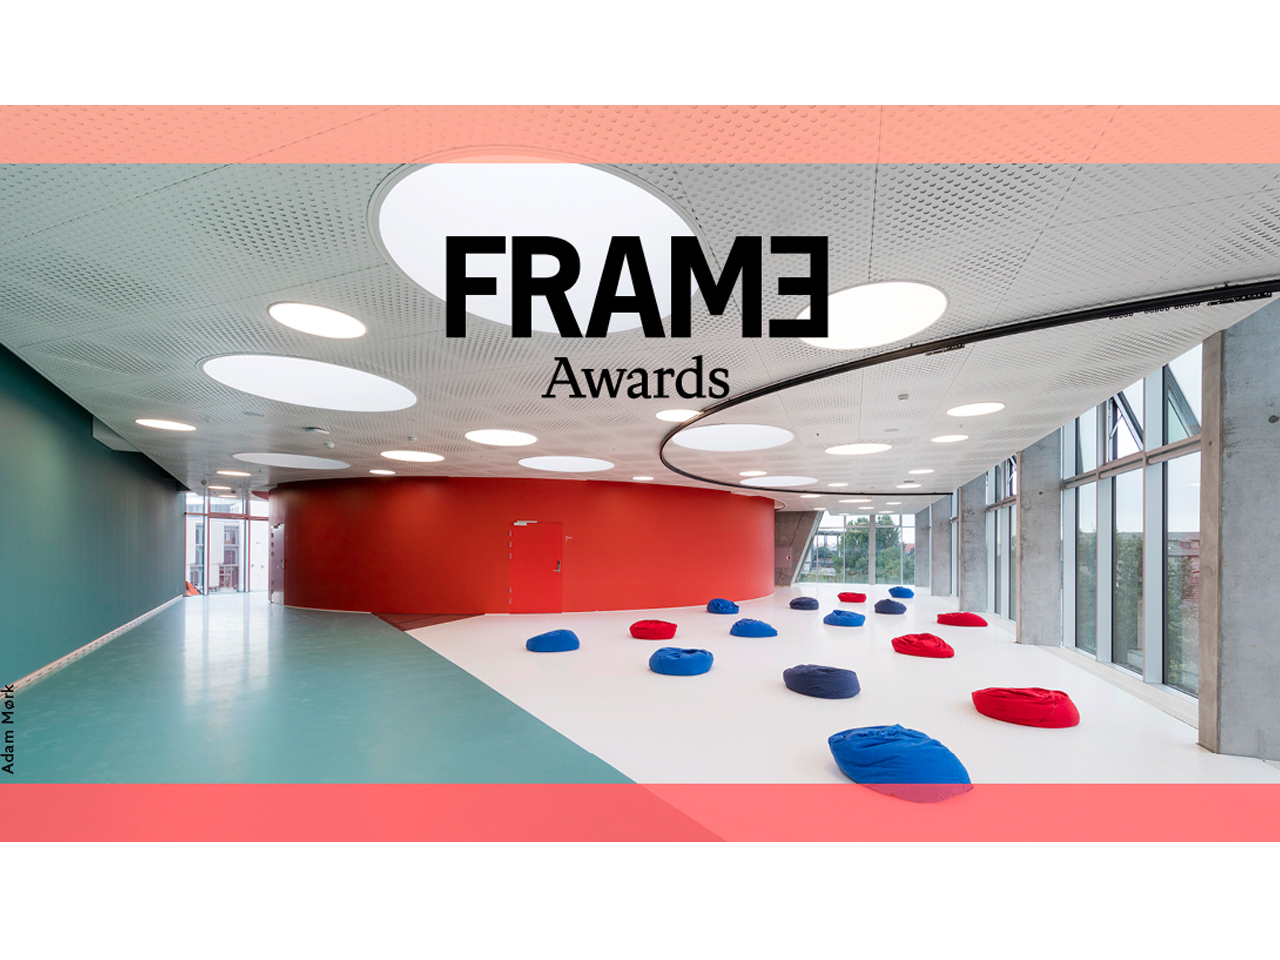 Winy Maas announced as a jury member for the Frame Awards 2018